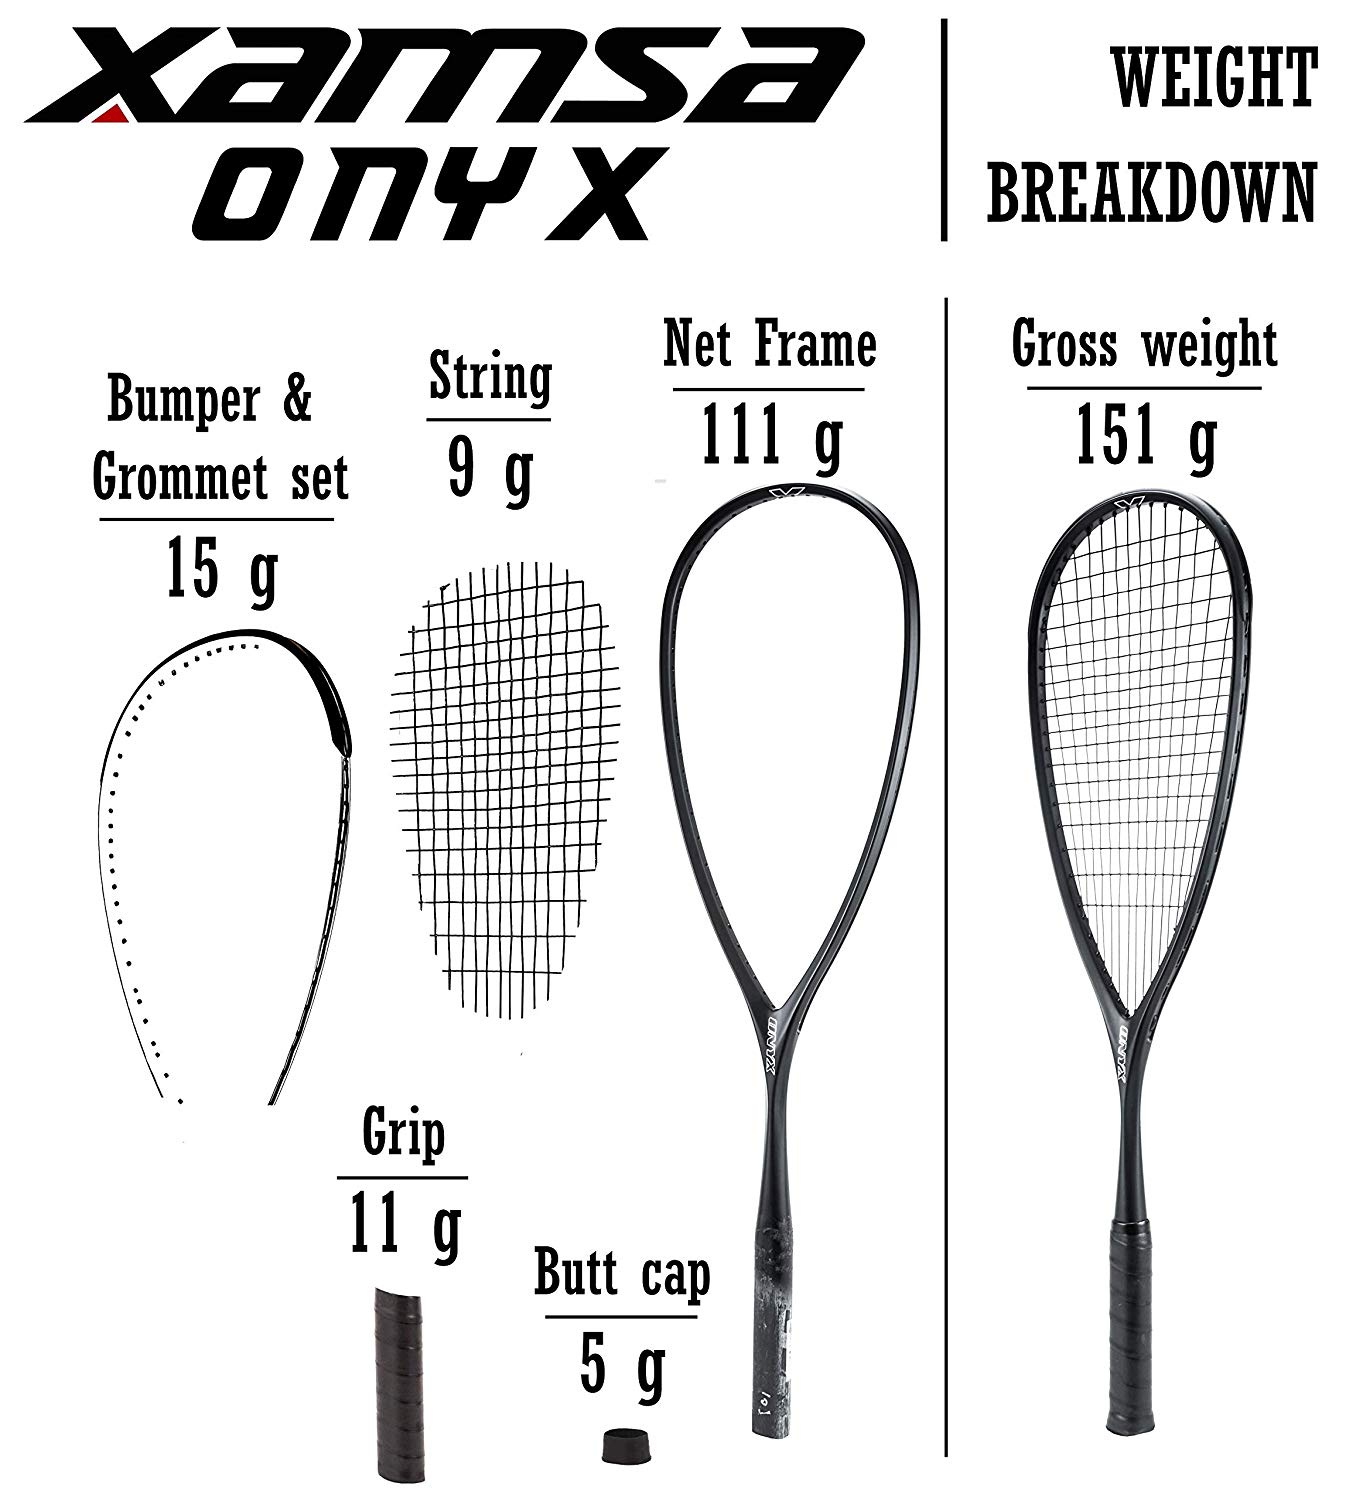 Xamsa Onyx Squash Racquet Strung by Xamsa - Shop Online for Sports &  Outdoors in the United States